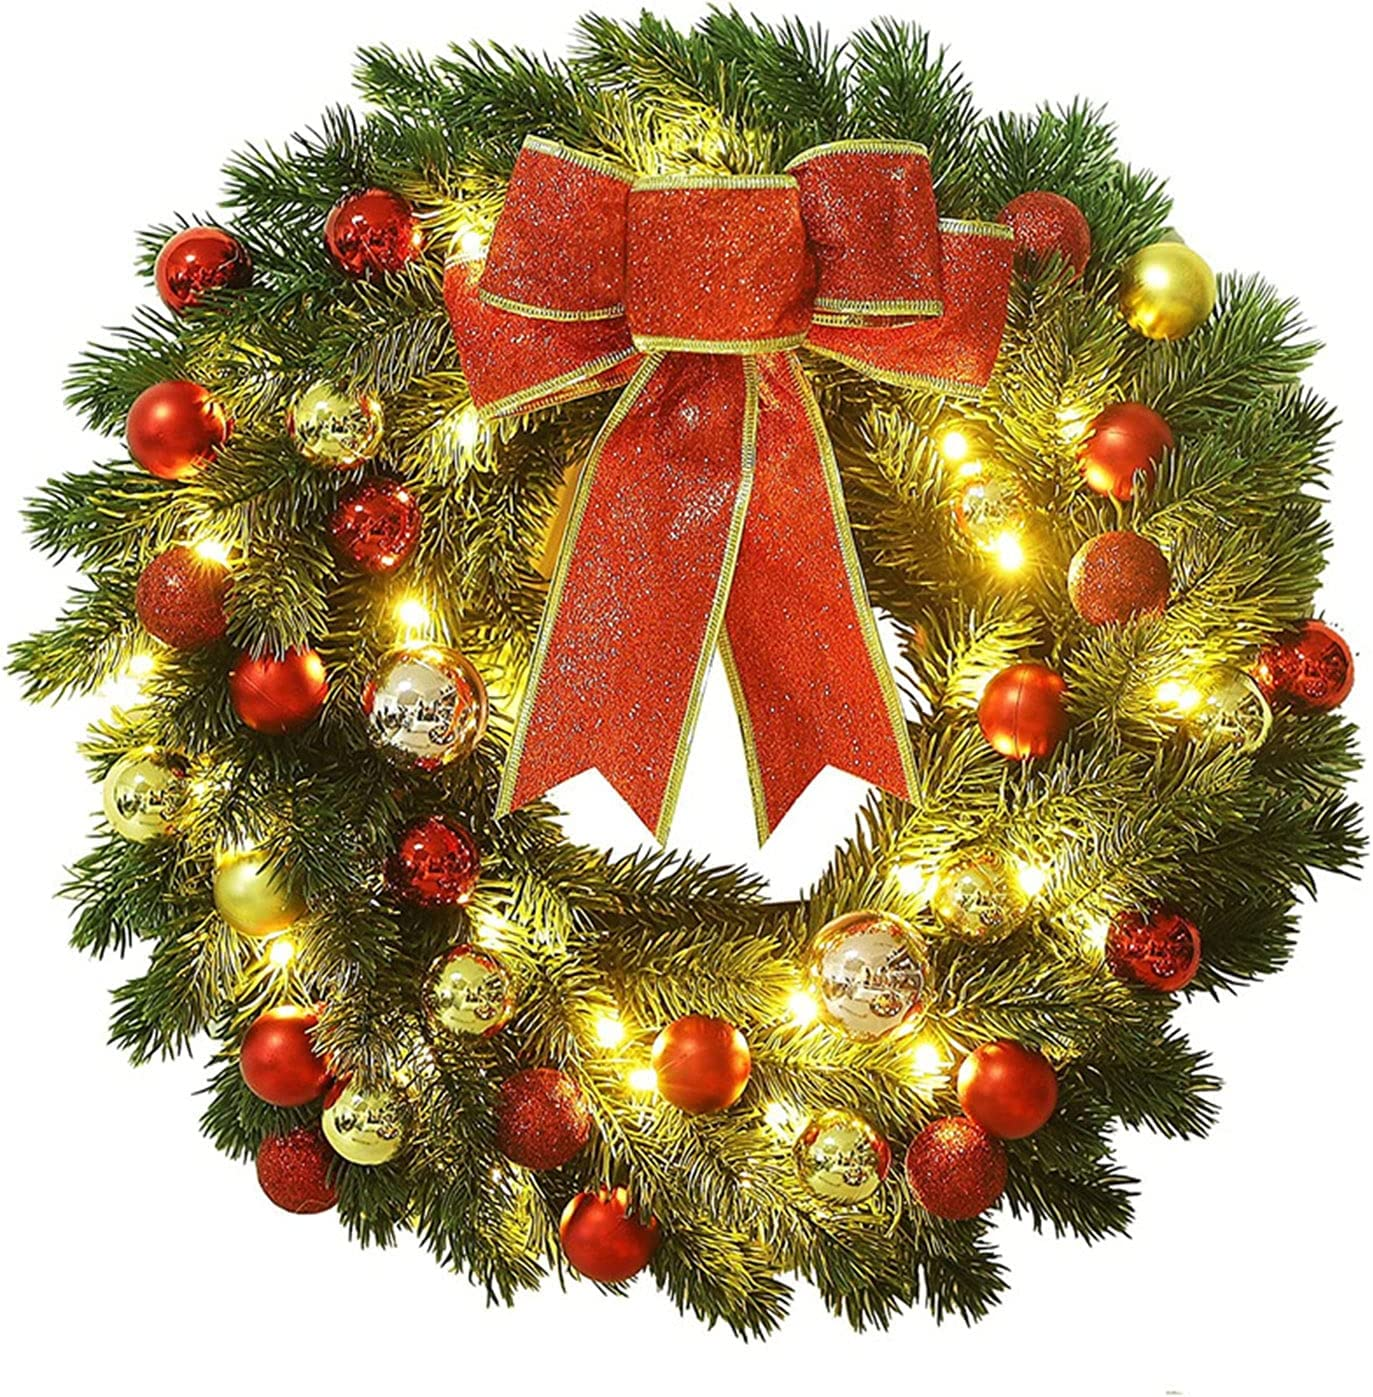 SanZHONGsd 16 Inches Milwaukee Mall LED Christmas with Import Pinecones Red Wreath Ber